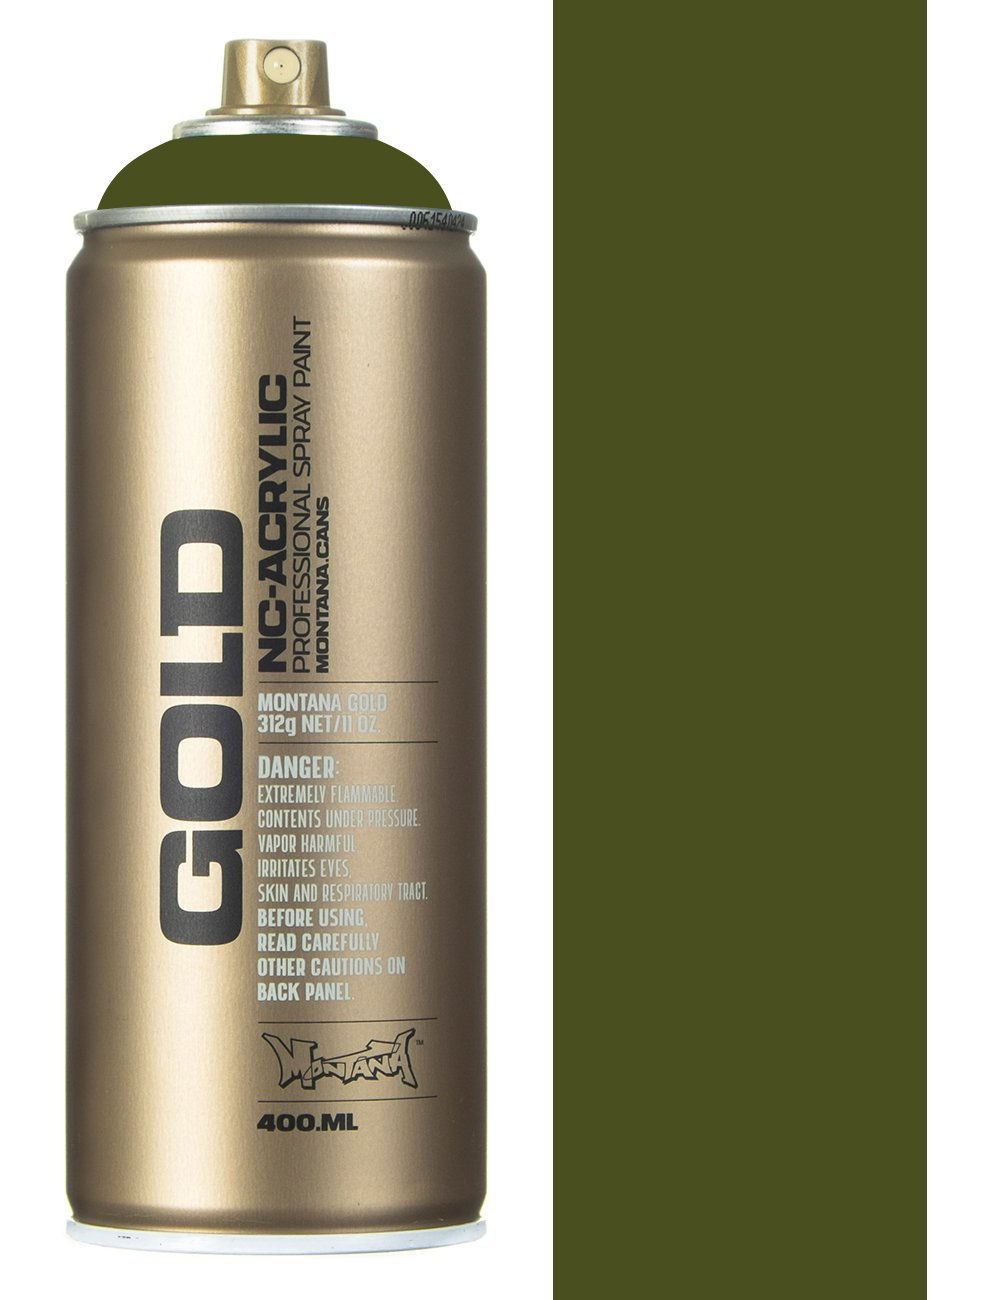 Montana Gold Olive Green Spray Paint 400ml Spray Paint Supplies From Iconsume Uk